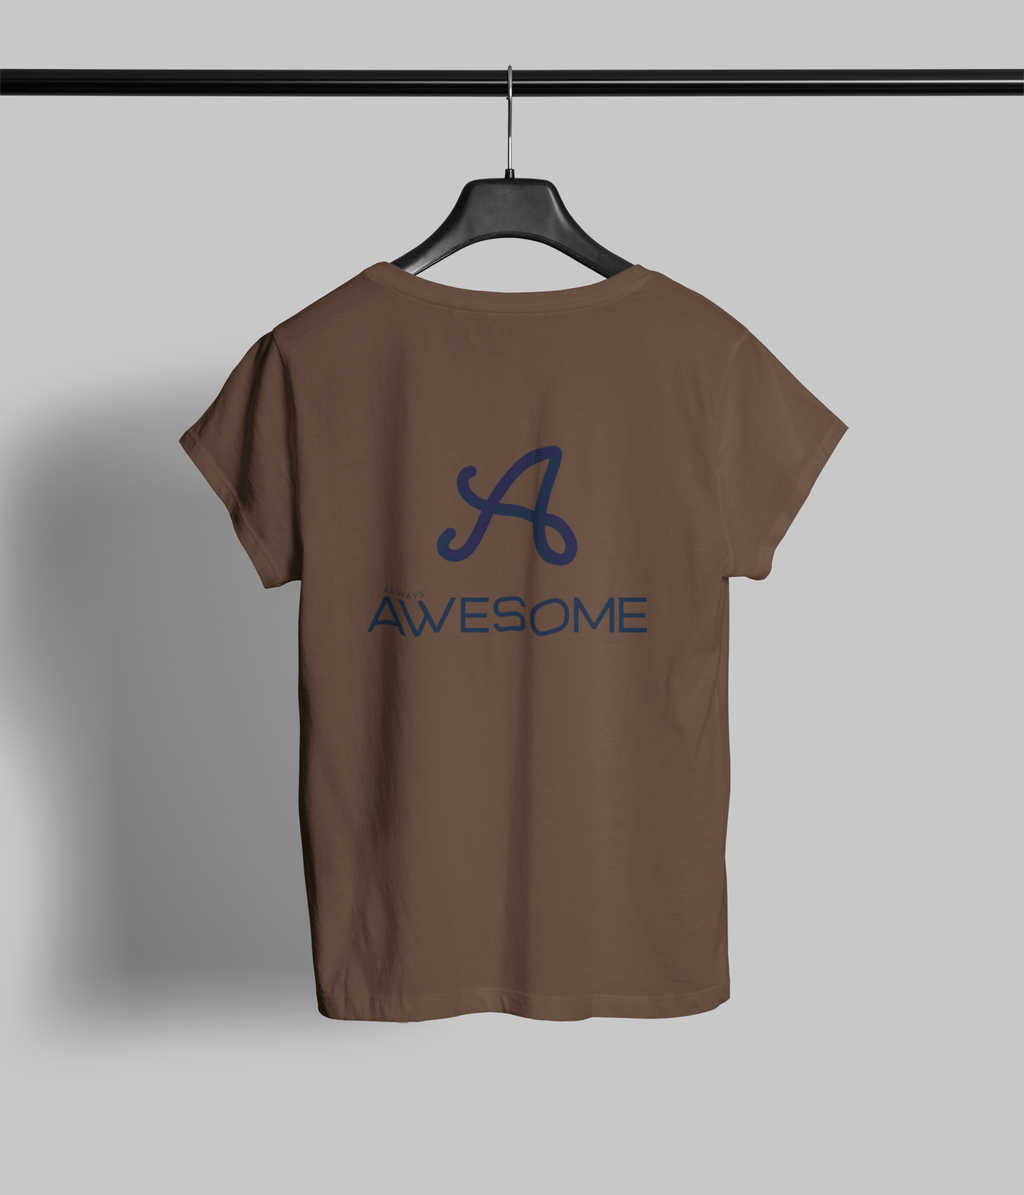 Always Awesome Clothing Printrove Coffee Brown 1